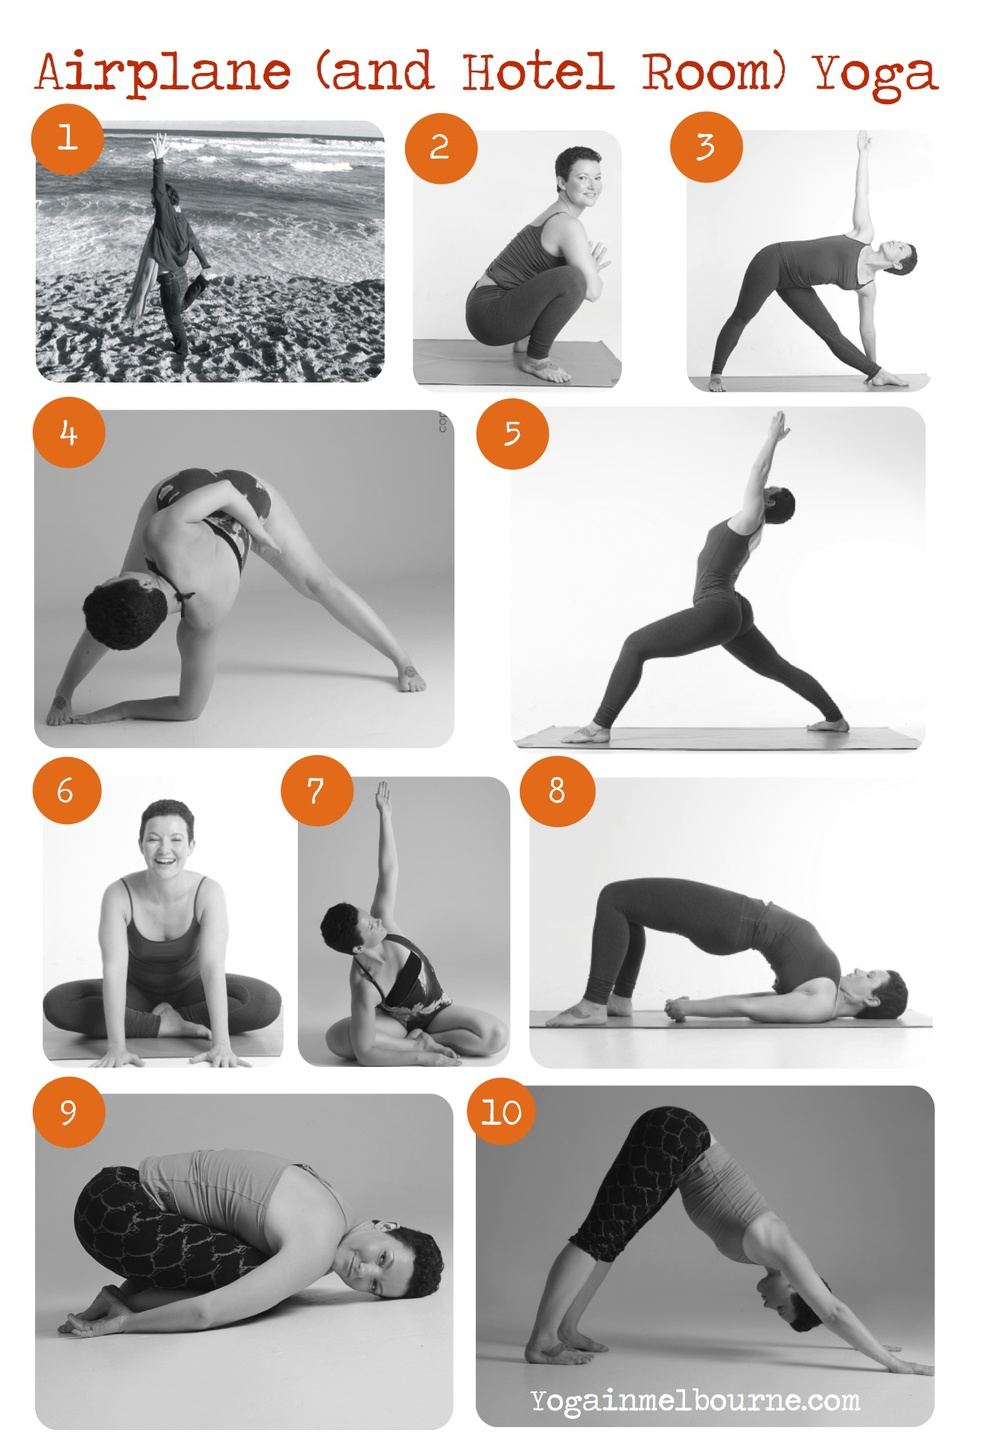 Get a free download of this airport yoga sequence at mm…yoga!